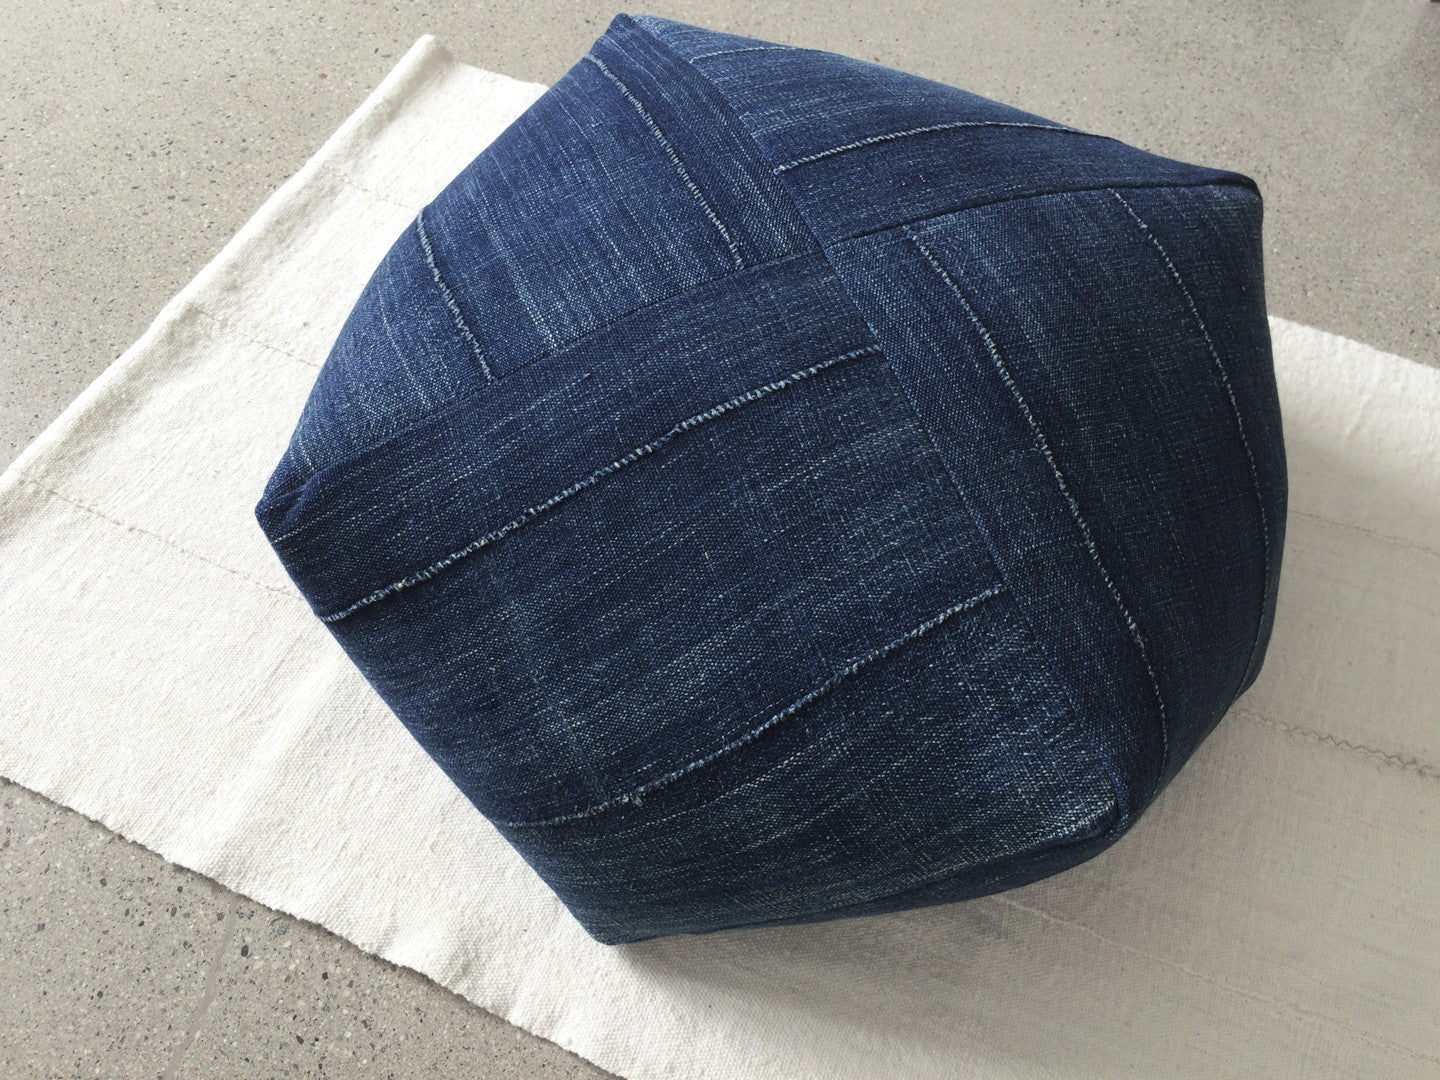 DUMPLING CUSHION in indigo, large